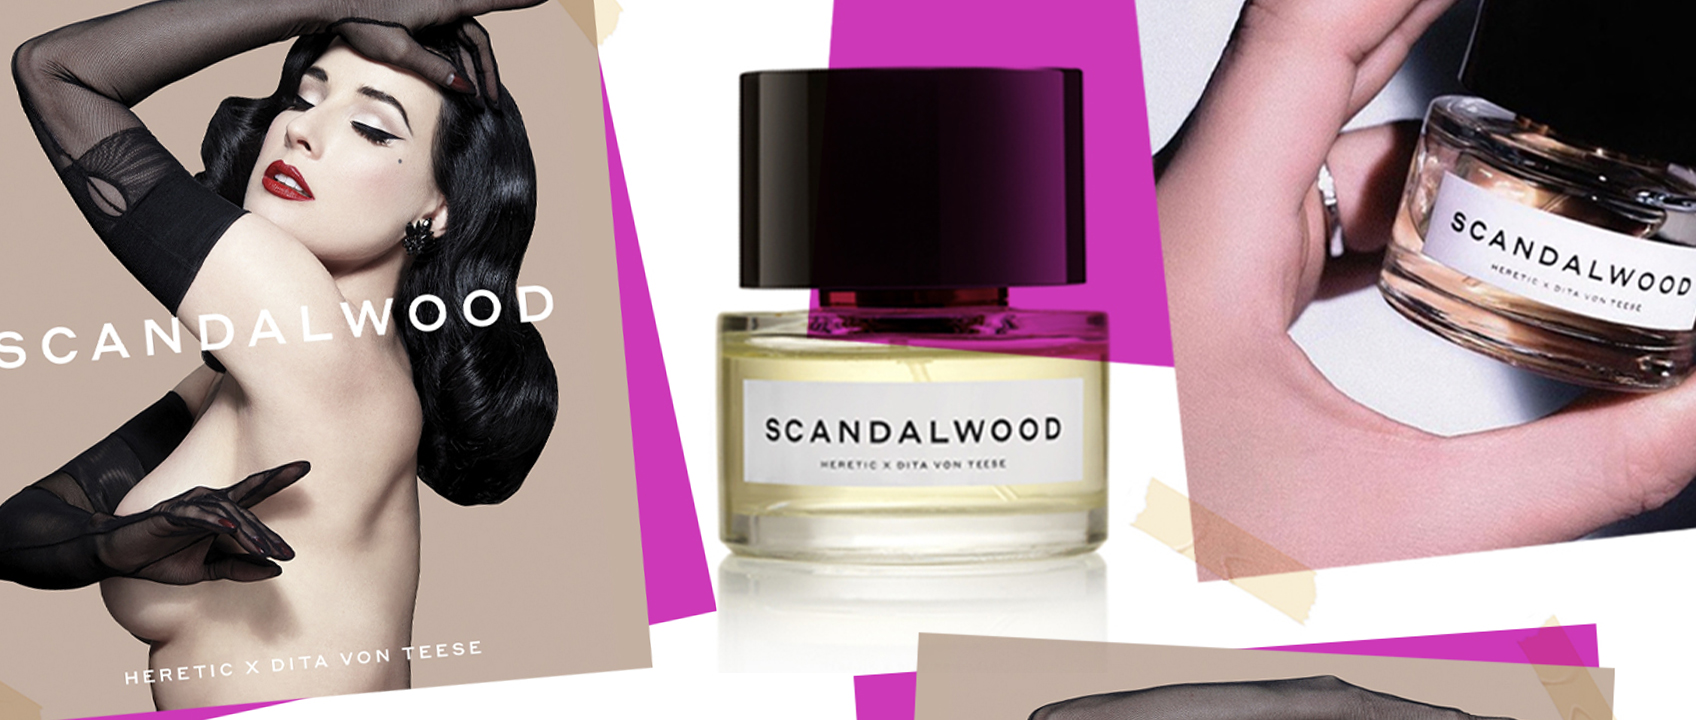 Our scandalous sandalwood….Scandalwood 💕